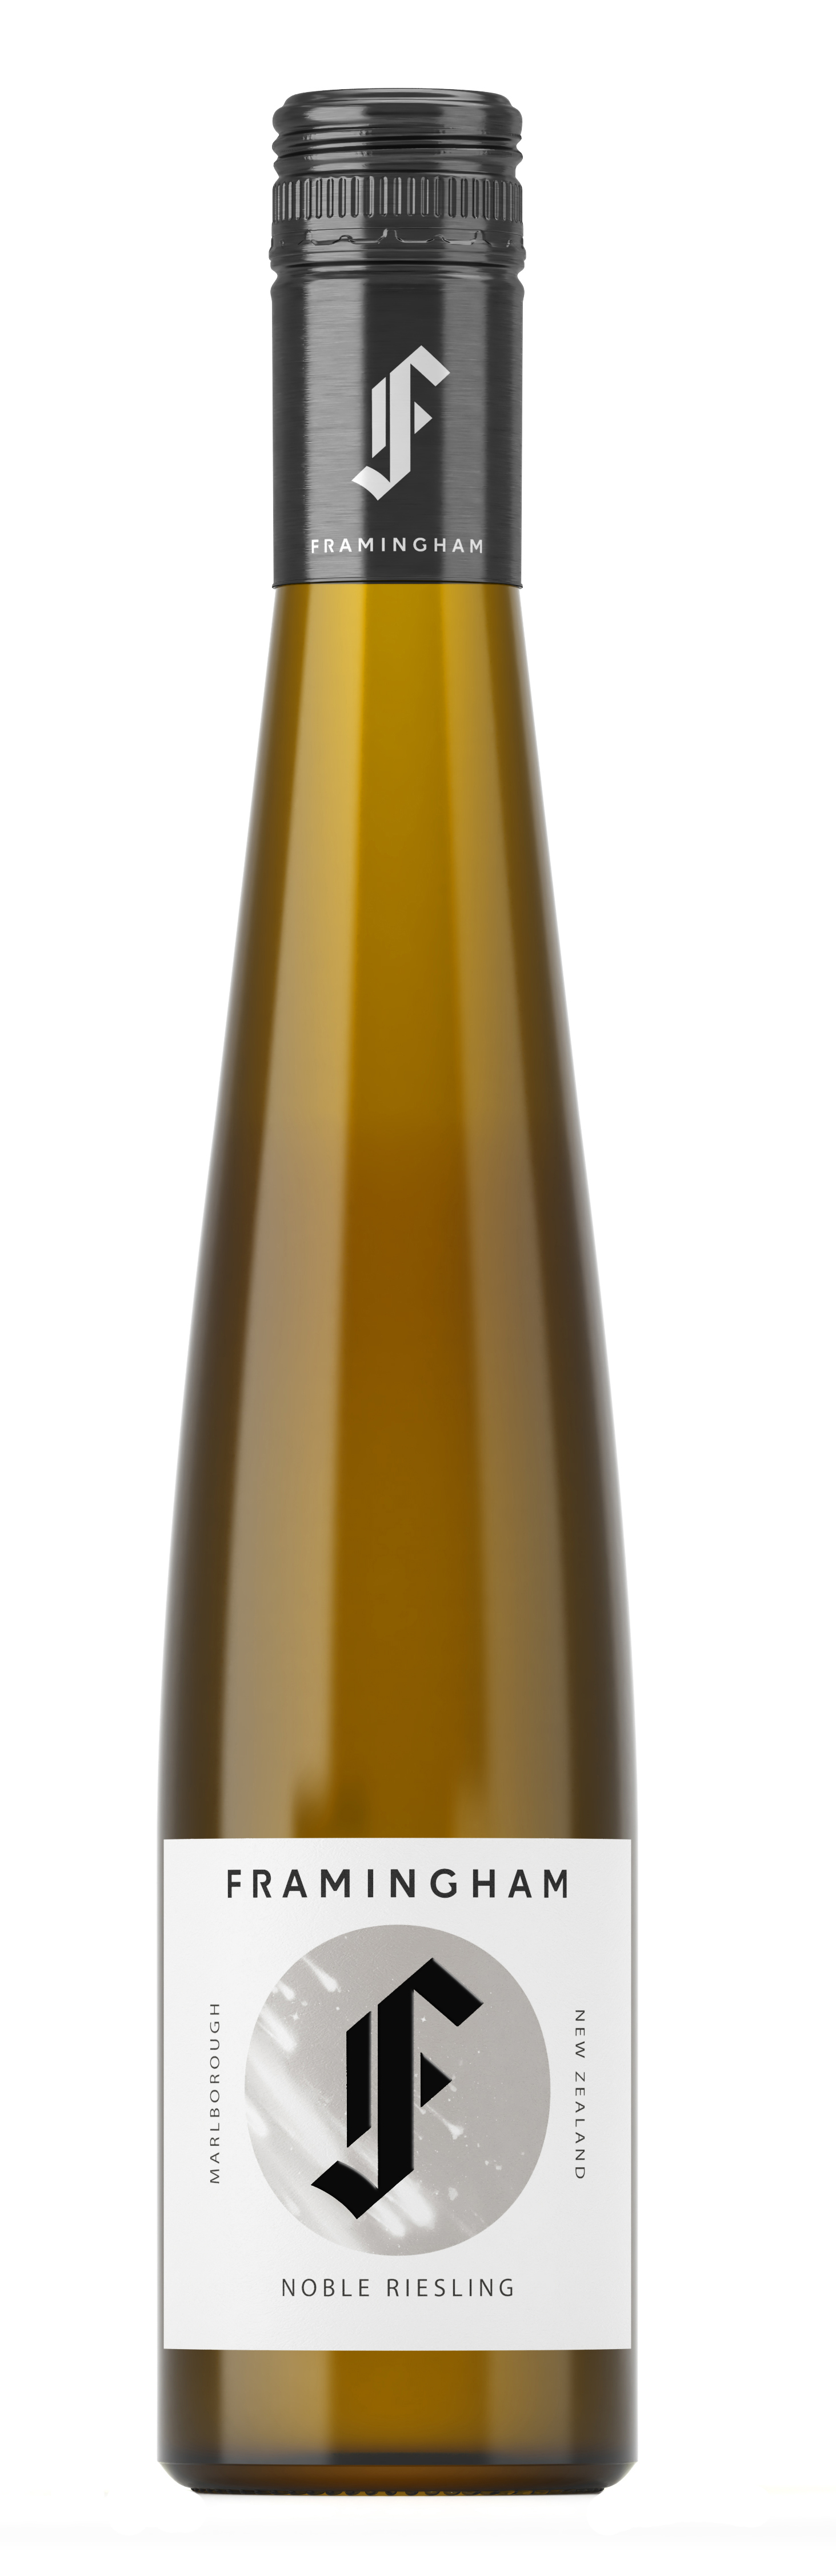 Framingham, Marlborough Noble Riesling 2017